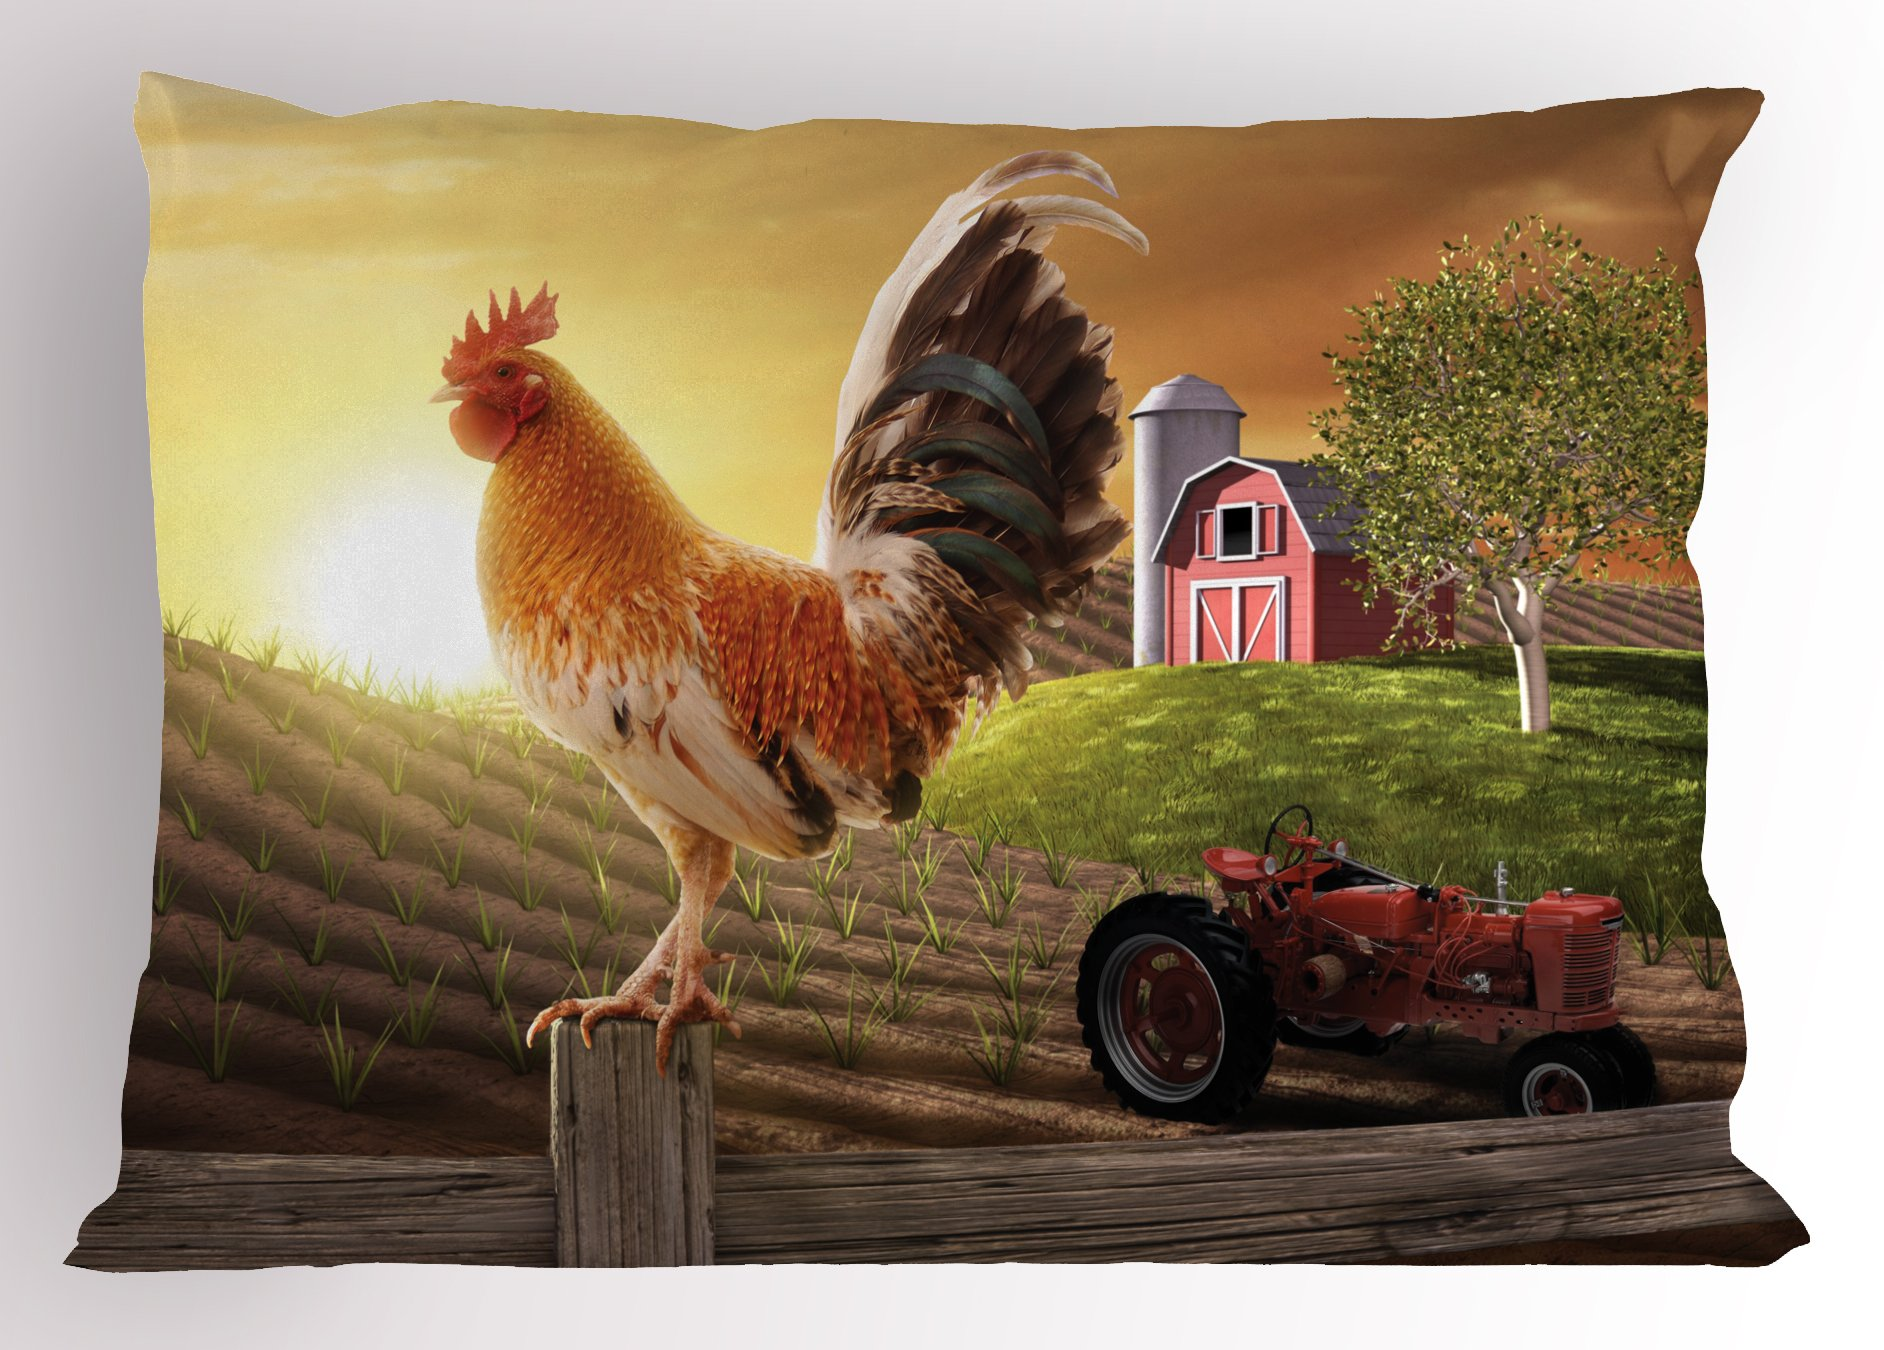 Ambesonne Country Pillow Sham, Farm Barn Yard Image with Rooster Animal Early Bird Nature and Rising Sun, Decorative Standard Queen Size Printed Pillowcase, 30 X 20 Inches, Light Brown Red